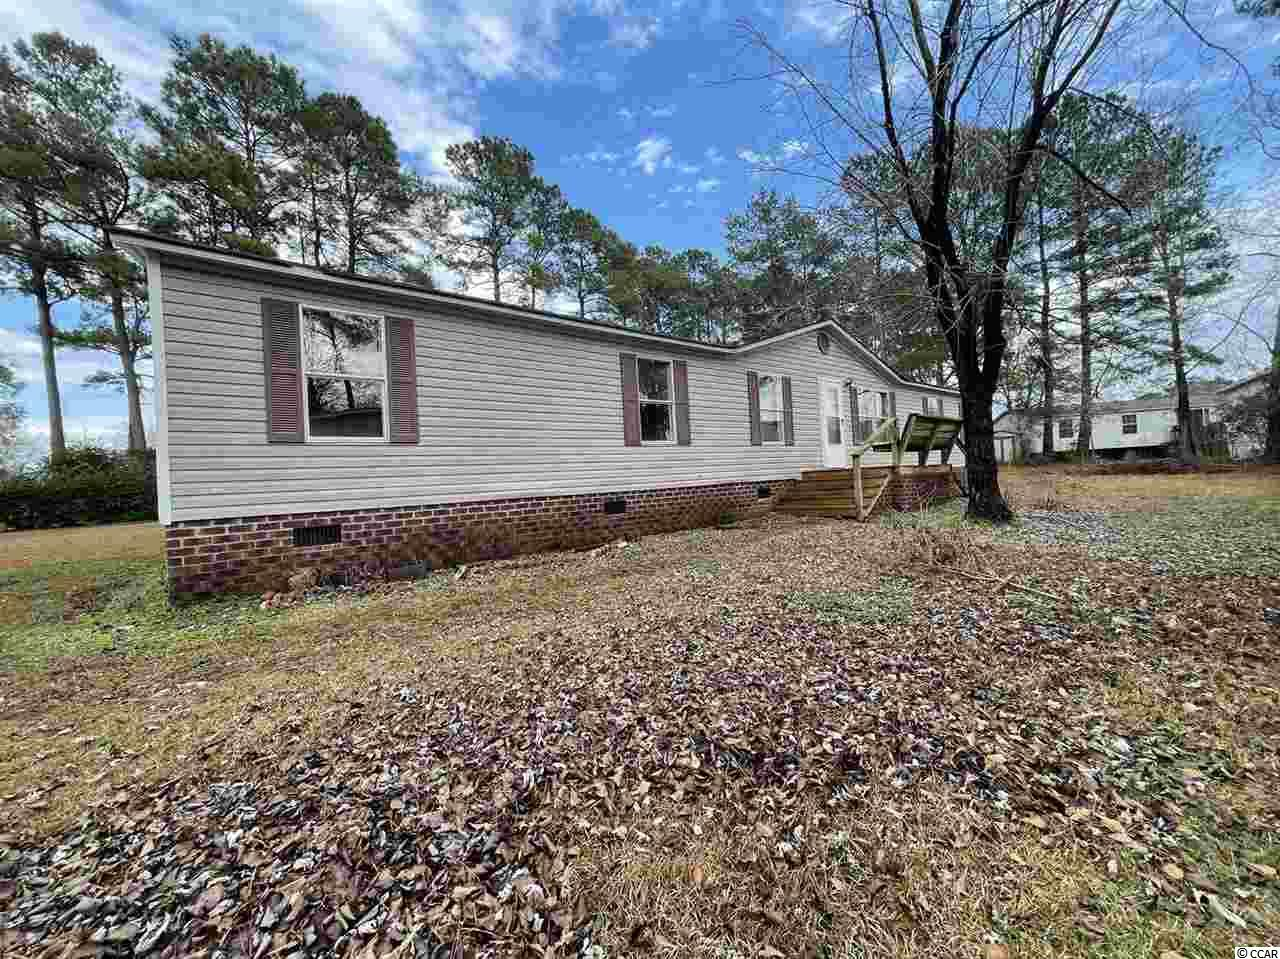 Great home located near Myrtle Beach! Minutes from all of what Myrtle Beach offers and Carolina Forest! This home is priced to sell! Don't miss out on this affordable four bedroom and two bathroom home. It was recently been painted and more! This home has been very well maintained!